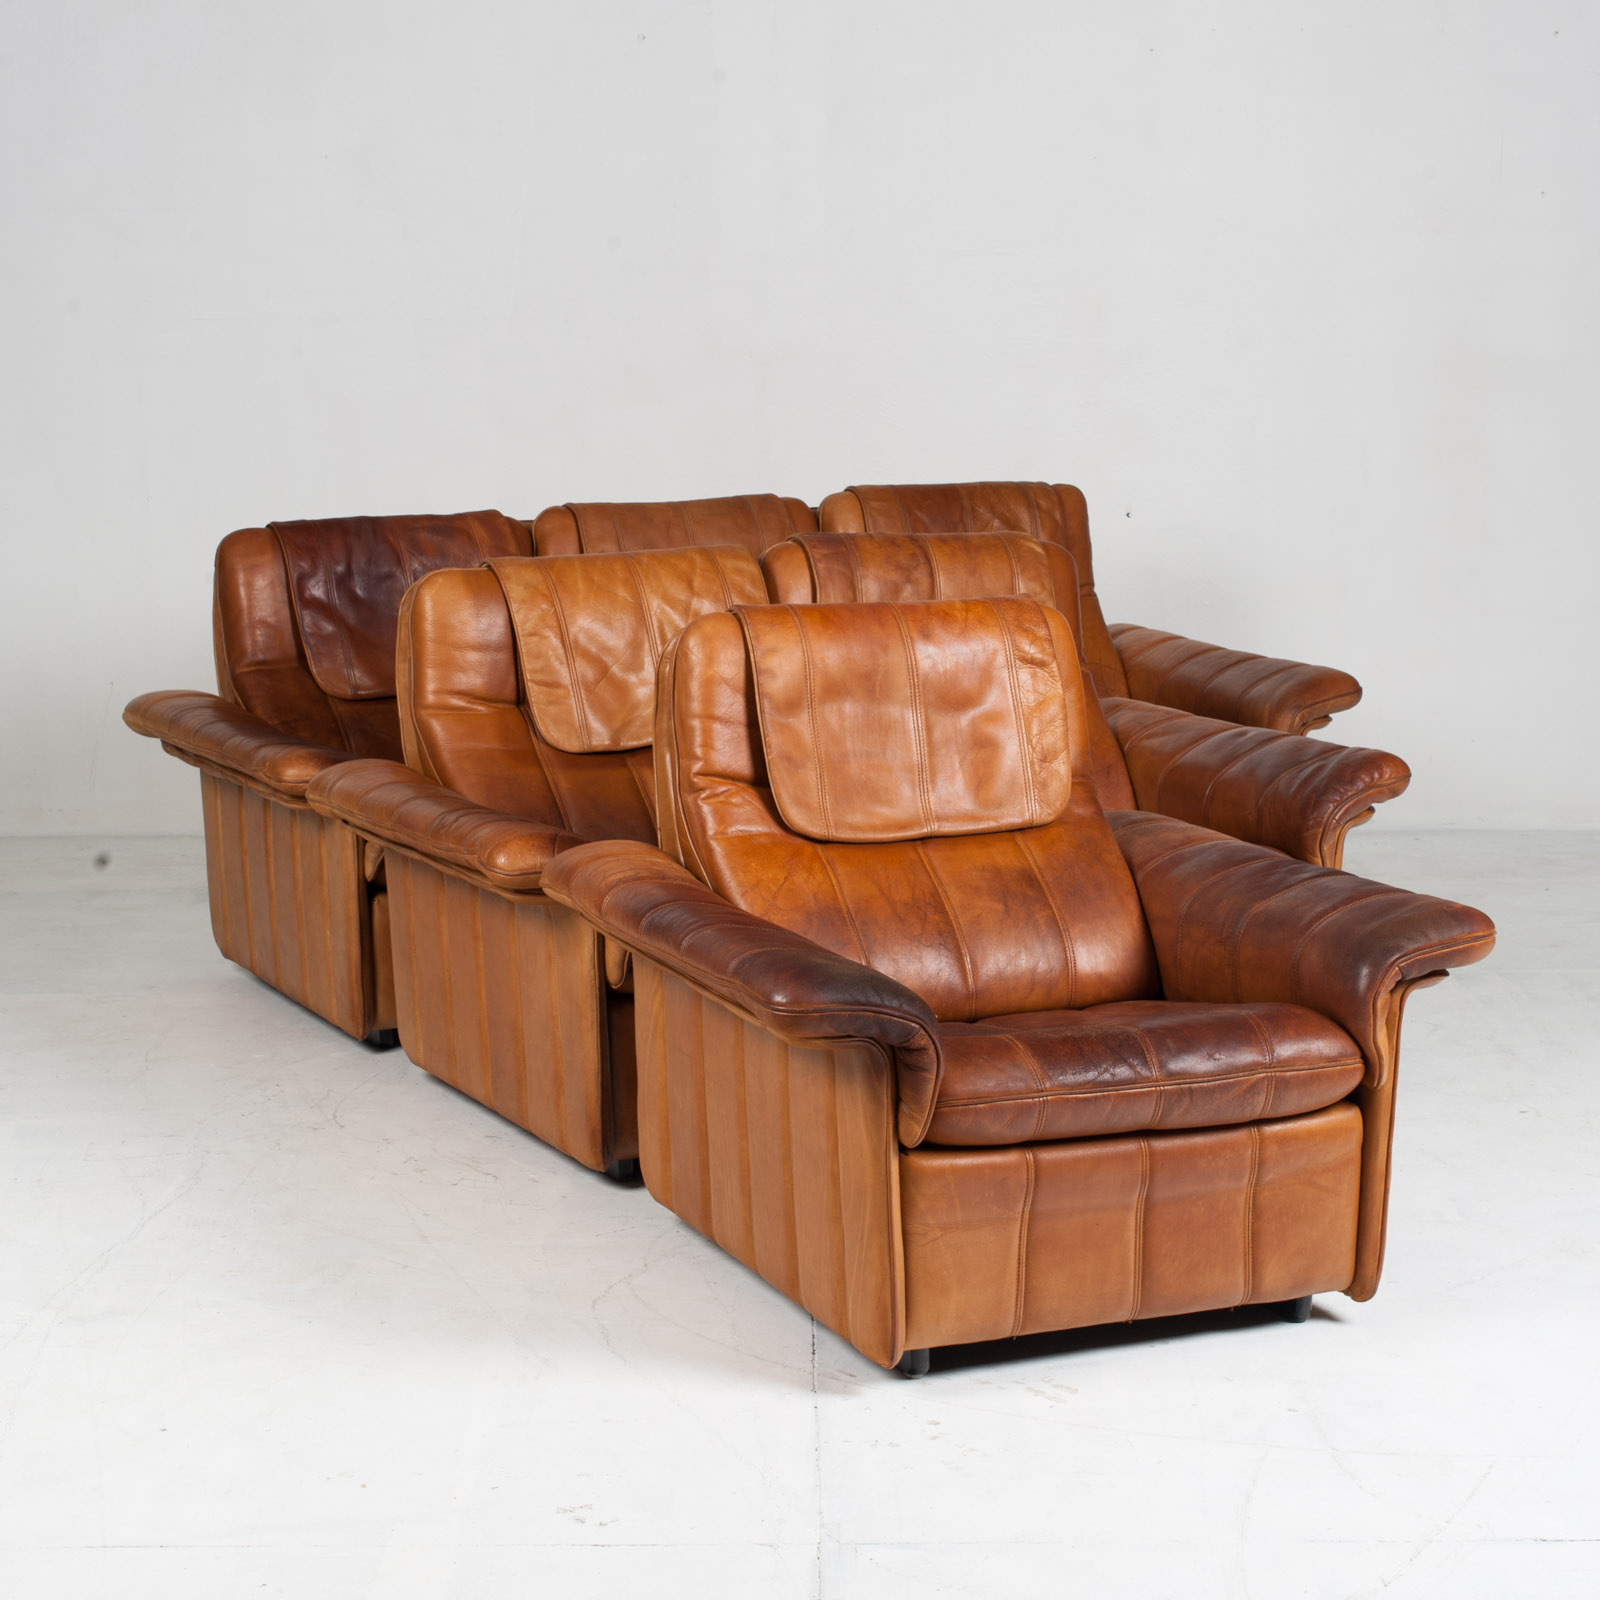 3 Seat Sofa By De Sede In Tan Leather 1970s Switzerland 16